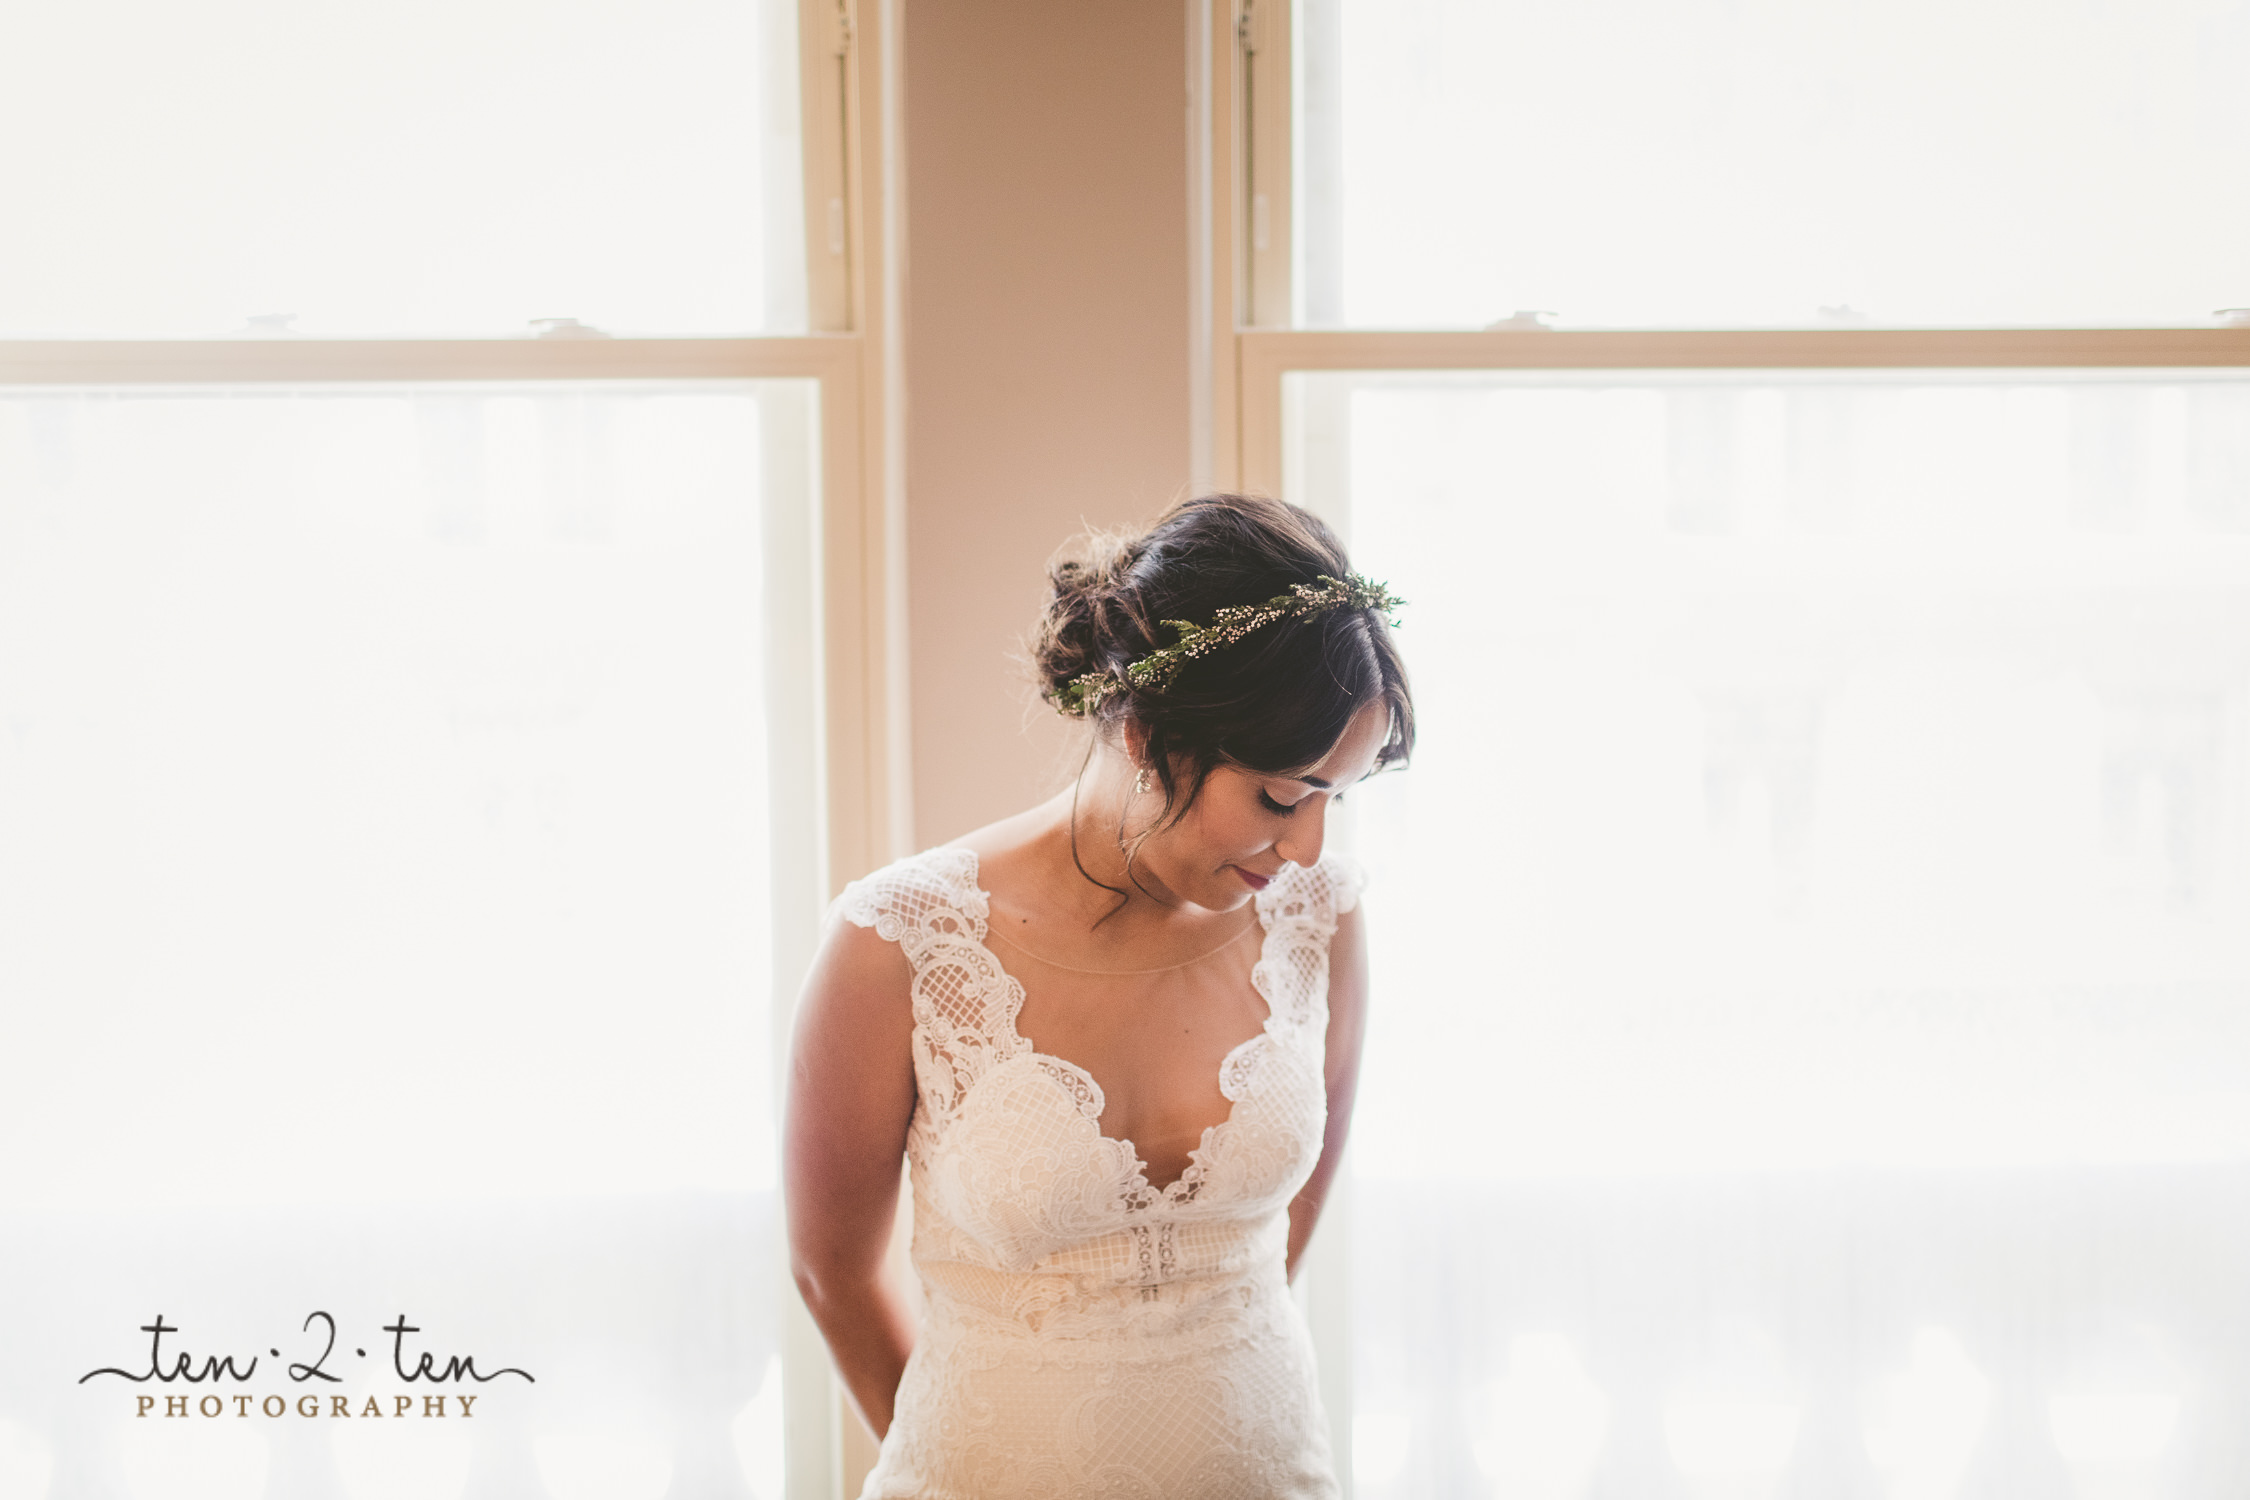 toronto wedding photographer 1 2 - Bride + Groom Model Needed for October 25th